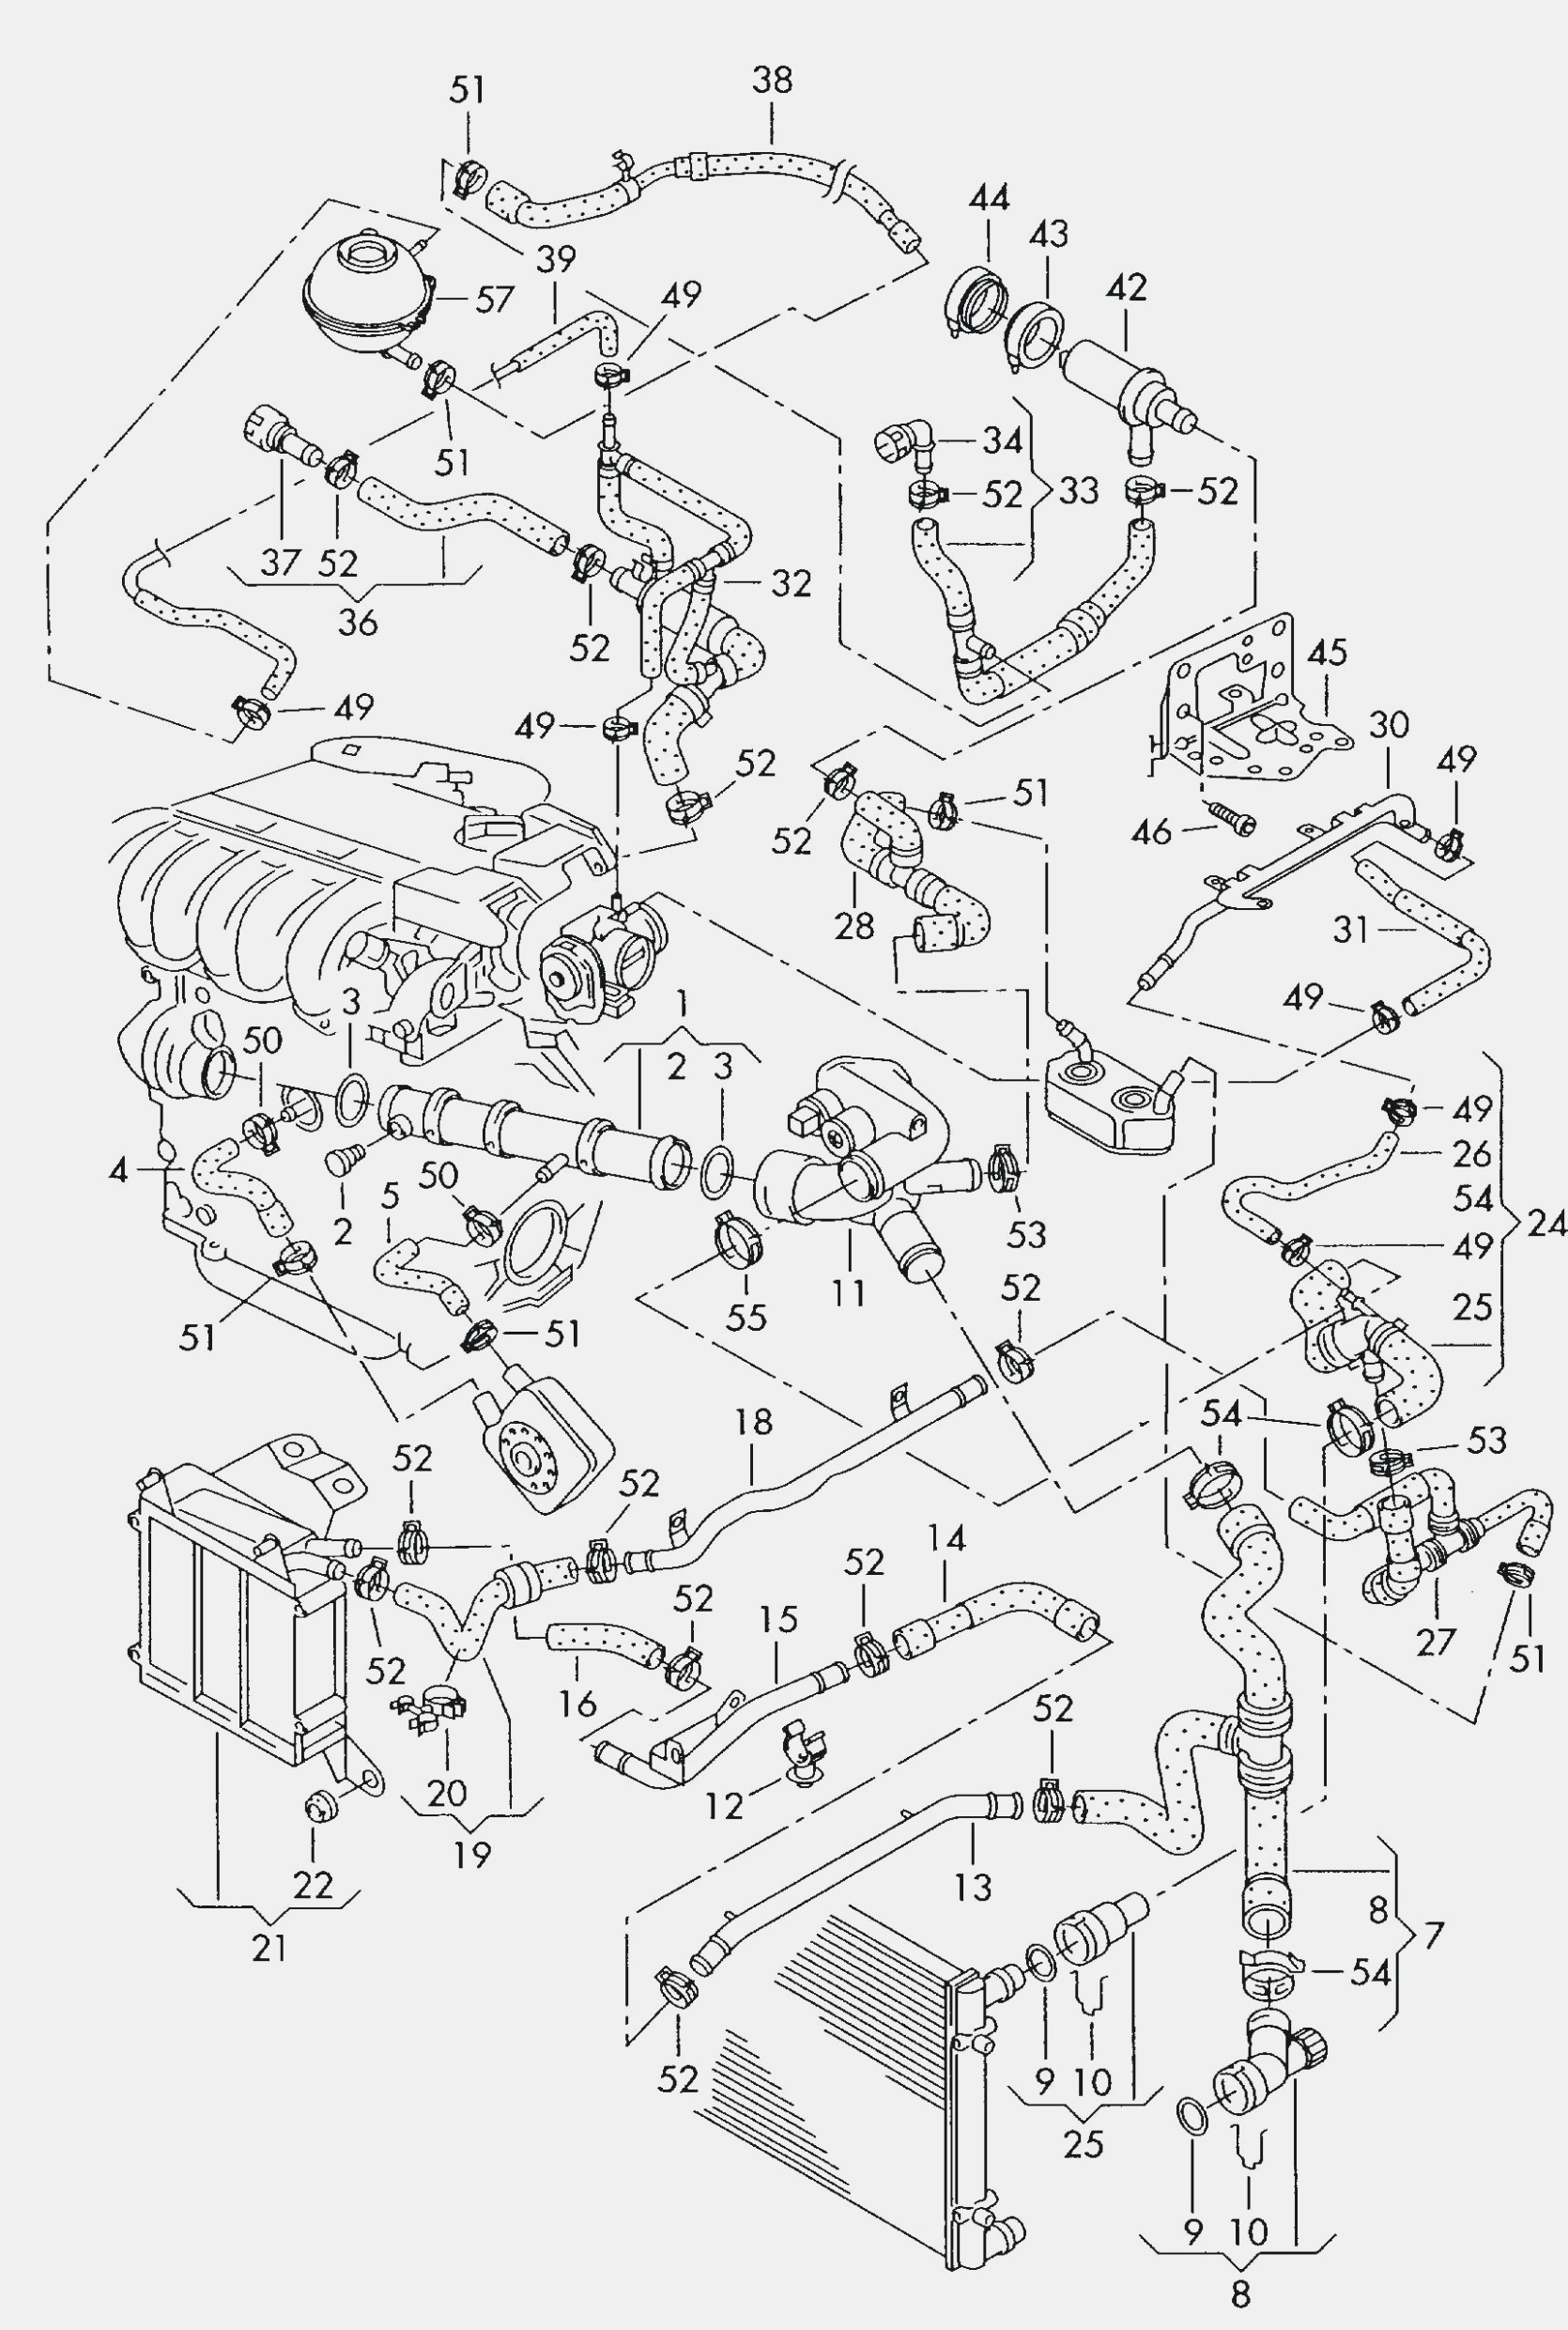 Volkswagen Timing Belt And Cover Volkswagen Circuit Diagrams